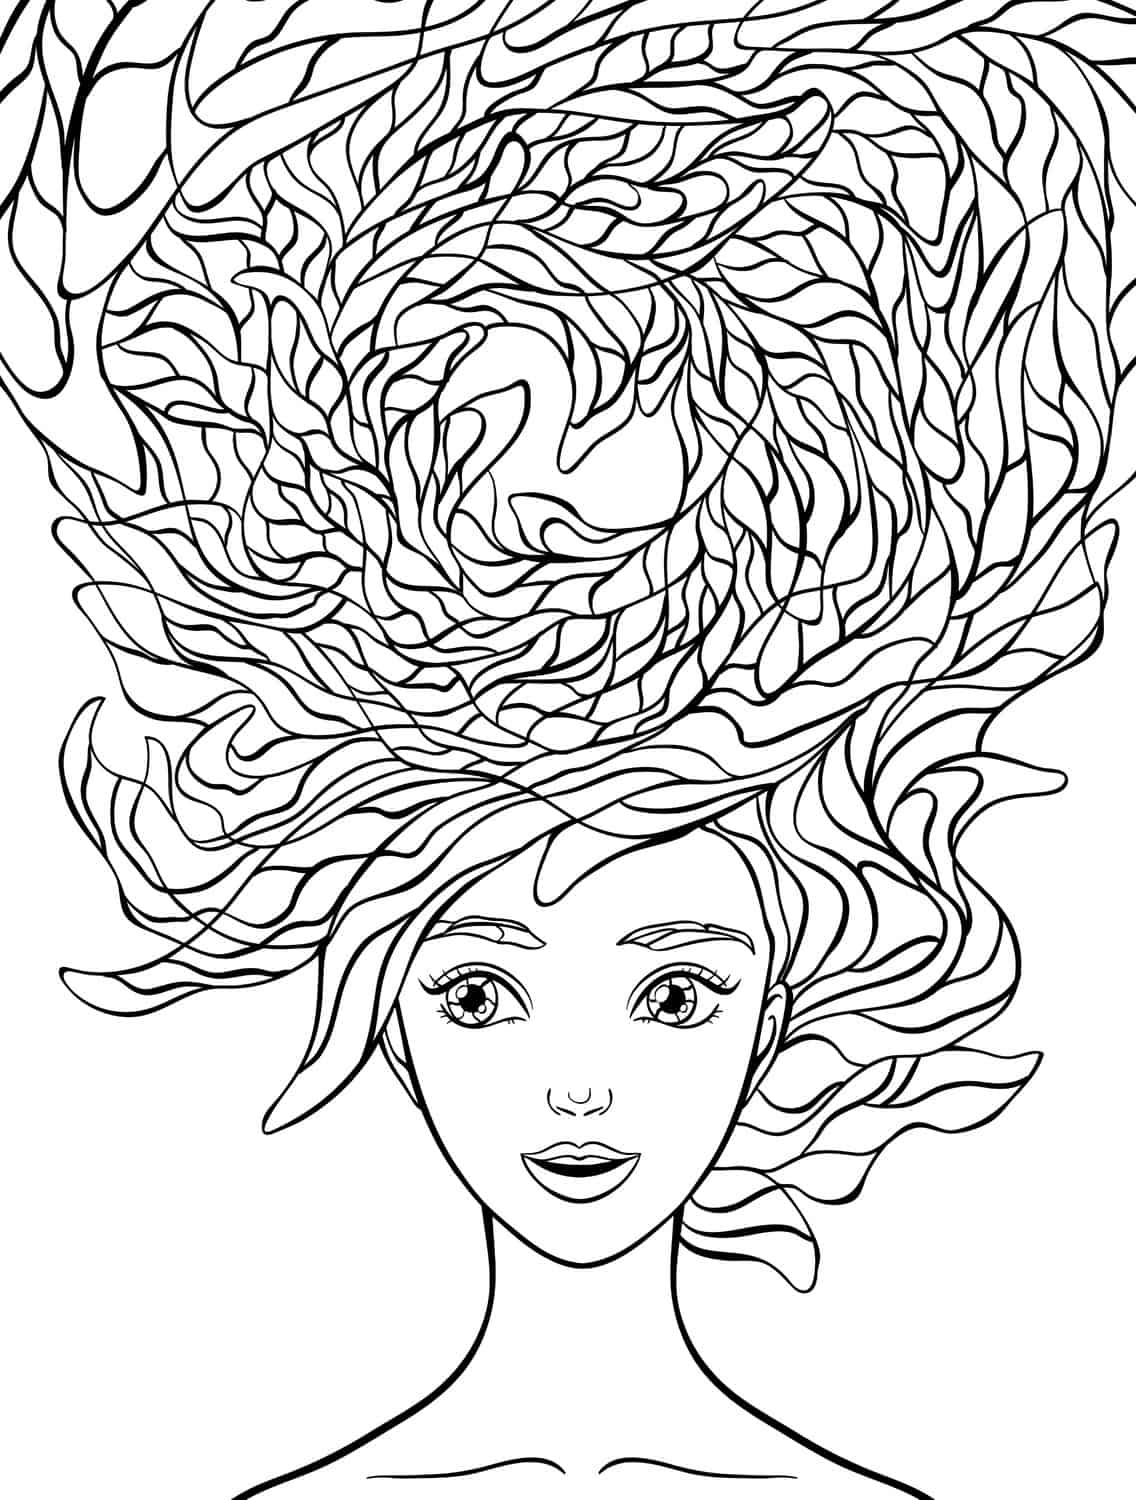 10 Crazy Hair Adult Coloring Pages Page 2 Of 12 Nerdy Mamma